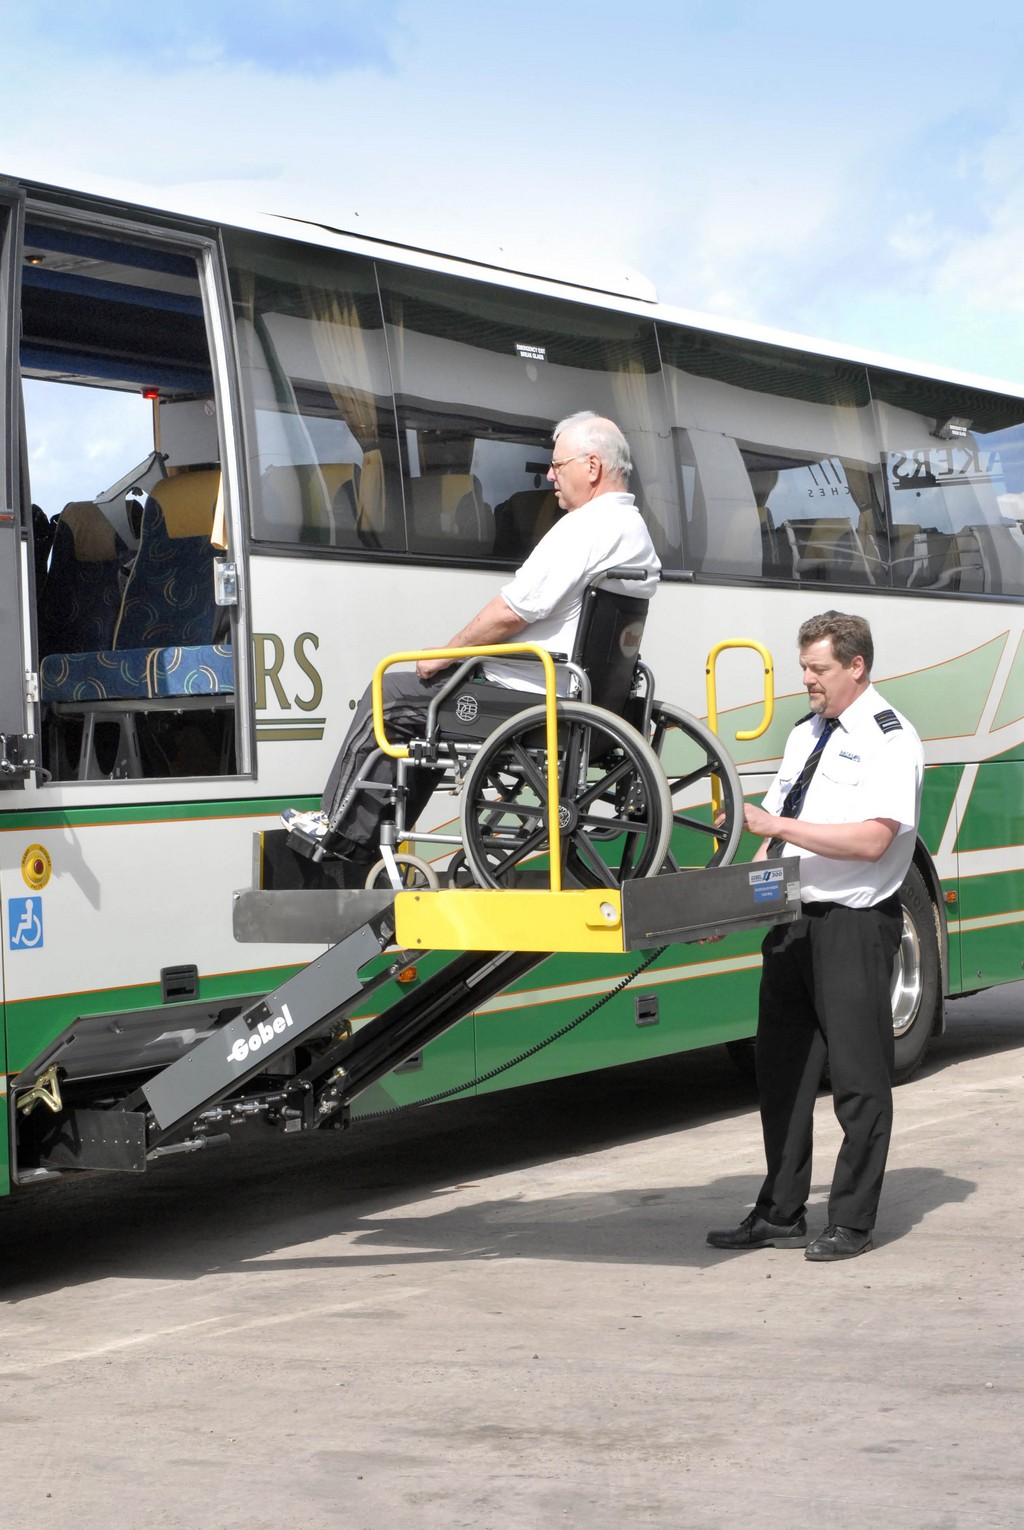 electric wheelchair lifts, electric wheel chair lifts, bus wheelchair lift photos, passenger with wheelchair lift